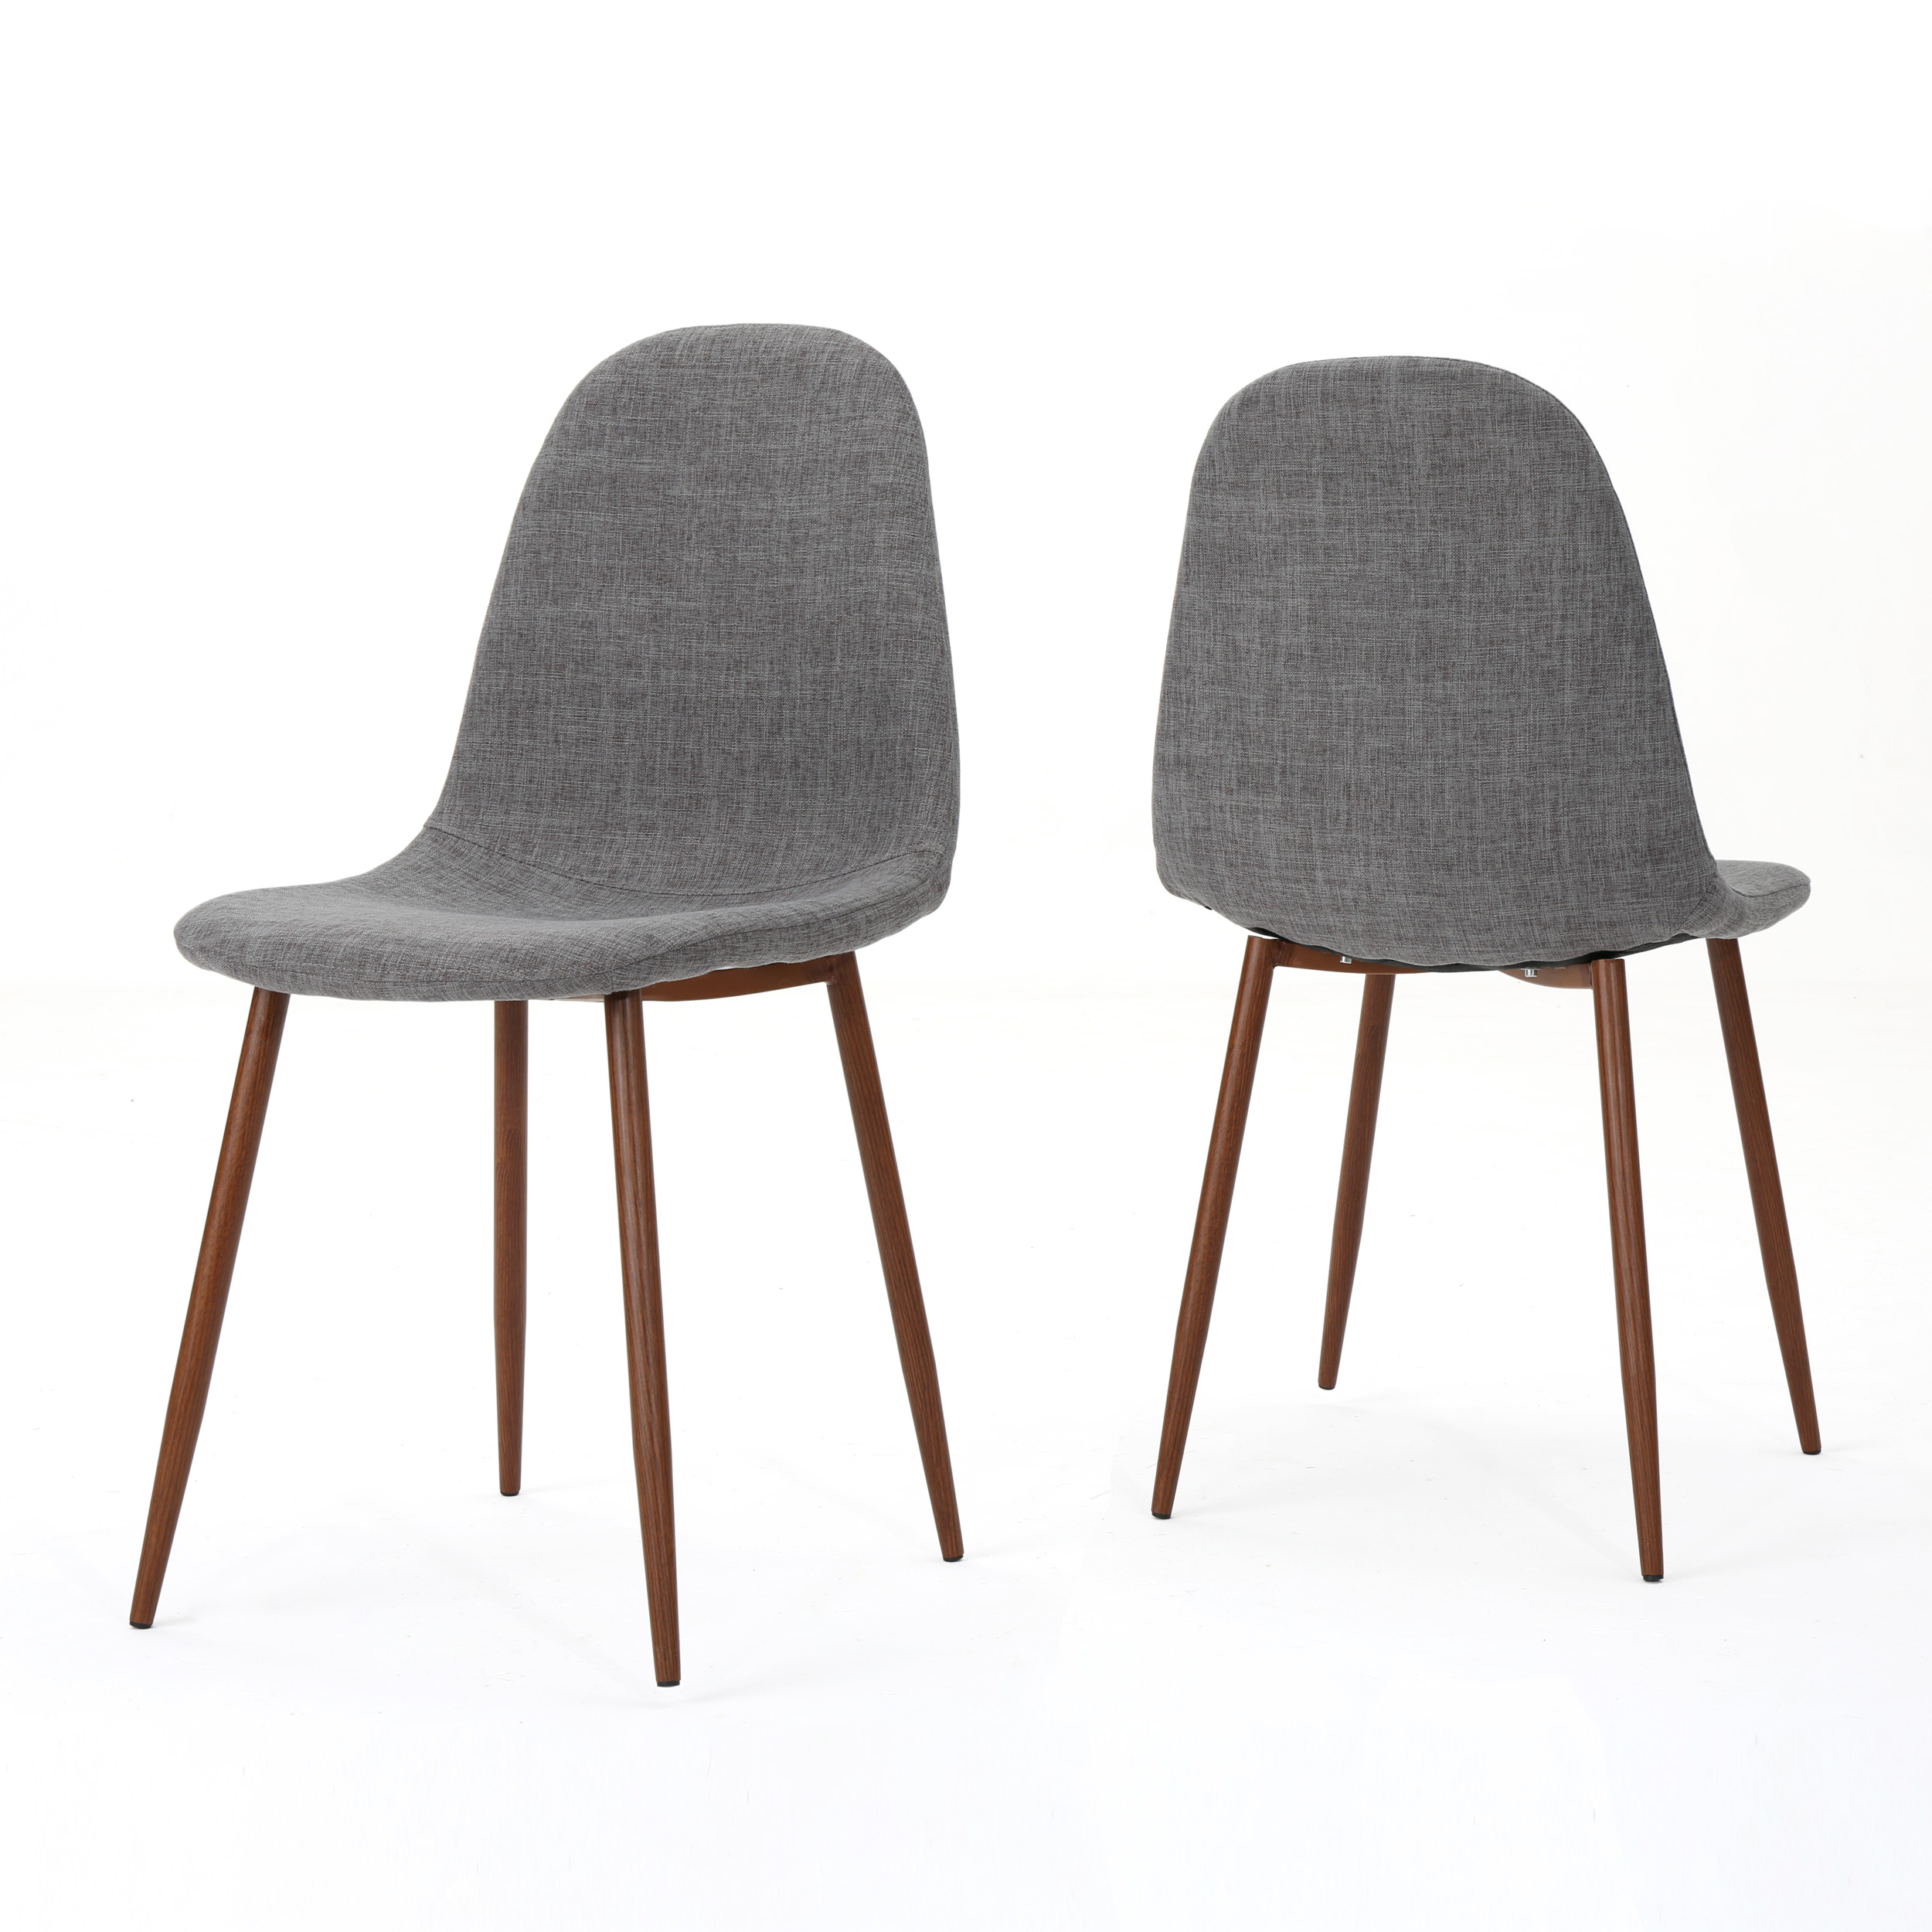 dark brown wooden dining chairs tables with resta mid century modern fabric wood finished metal legs set of 2 light grey walmart com